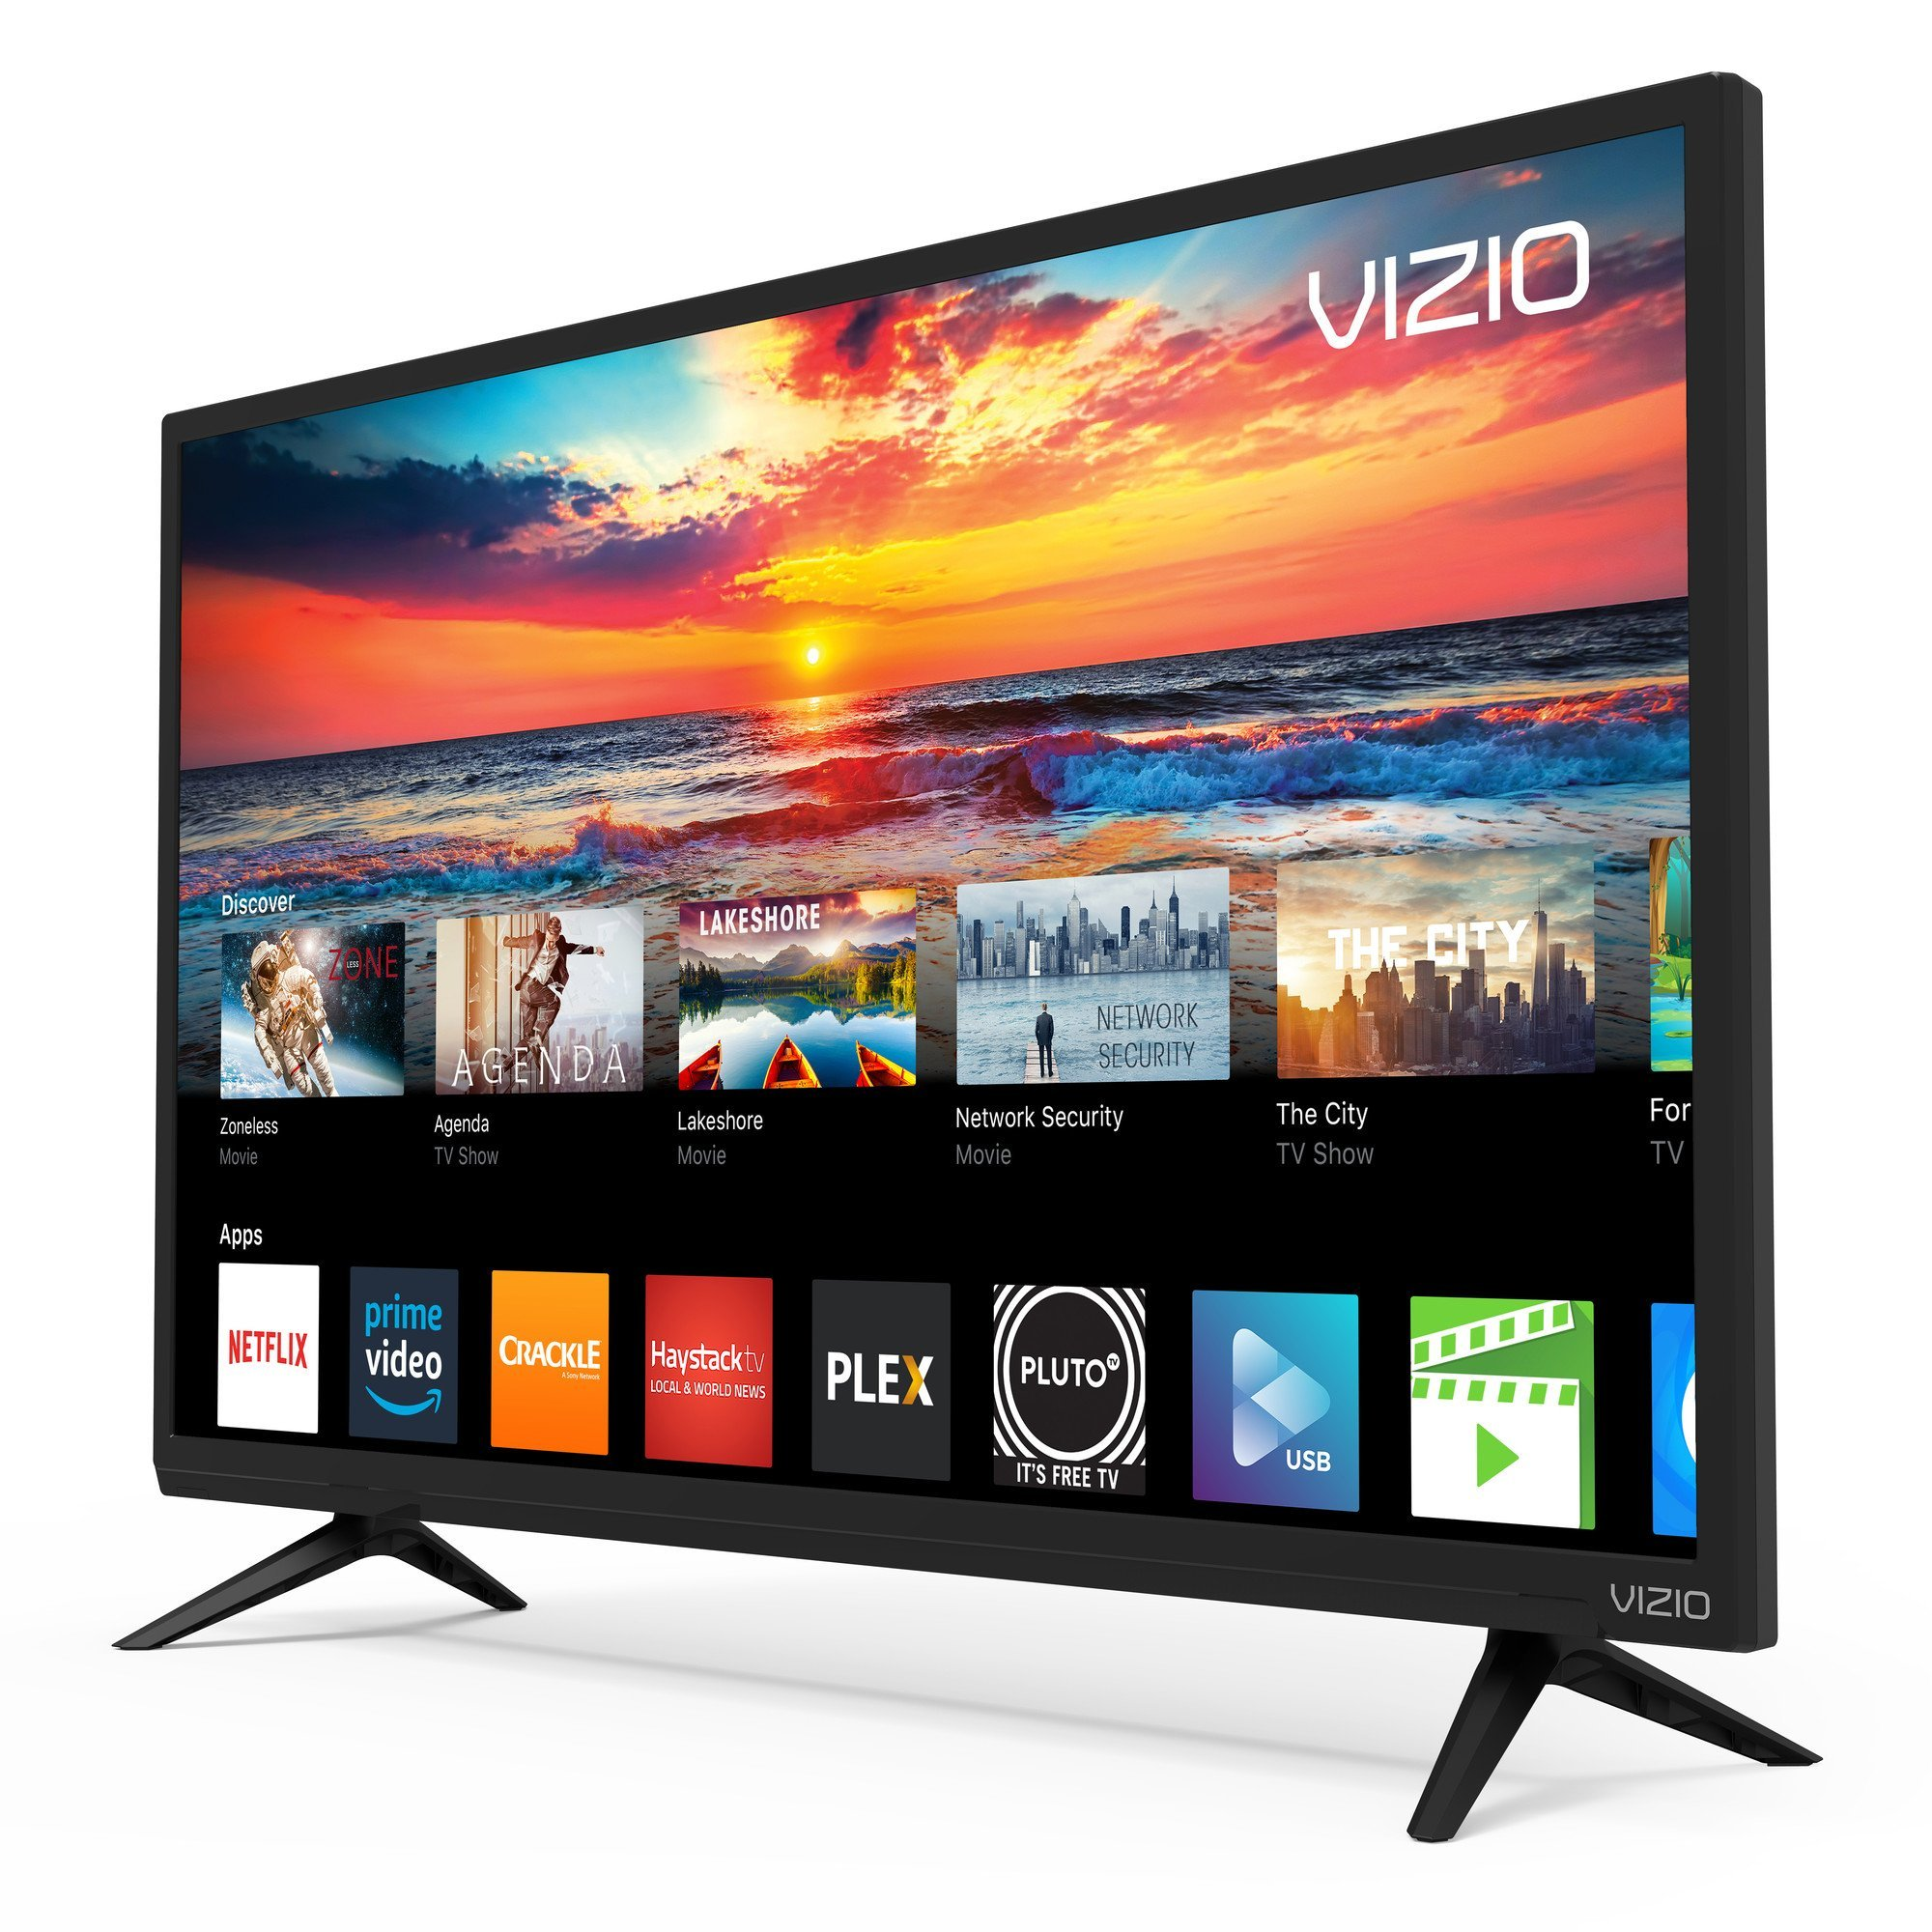 VIZIO SmartCast D-Series 32' Class FHD (1080P) Smart Full-Array LED TV D32f-F1 (Renewed) by VIZIO (Image #9)